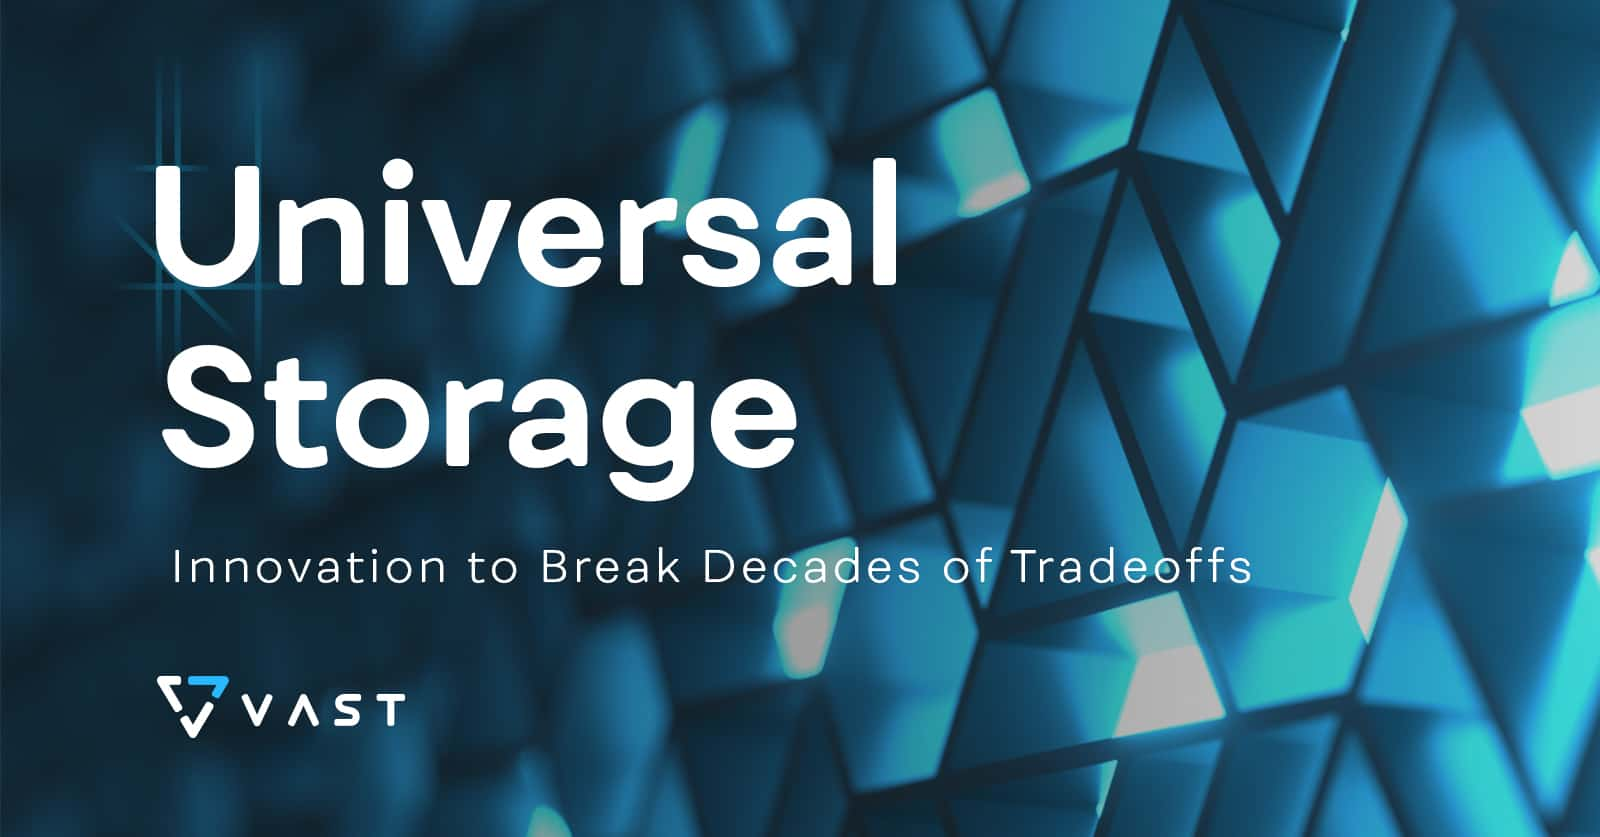 Universal Storage Short Overview